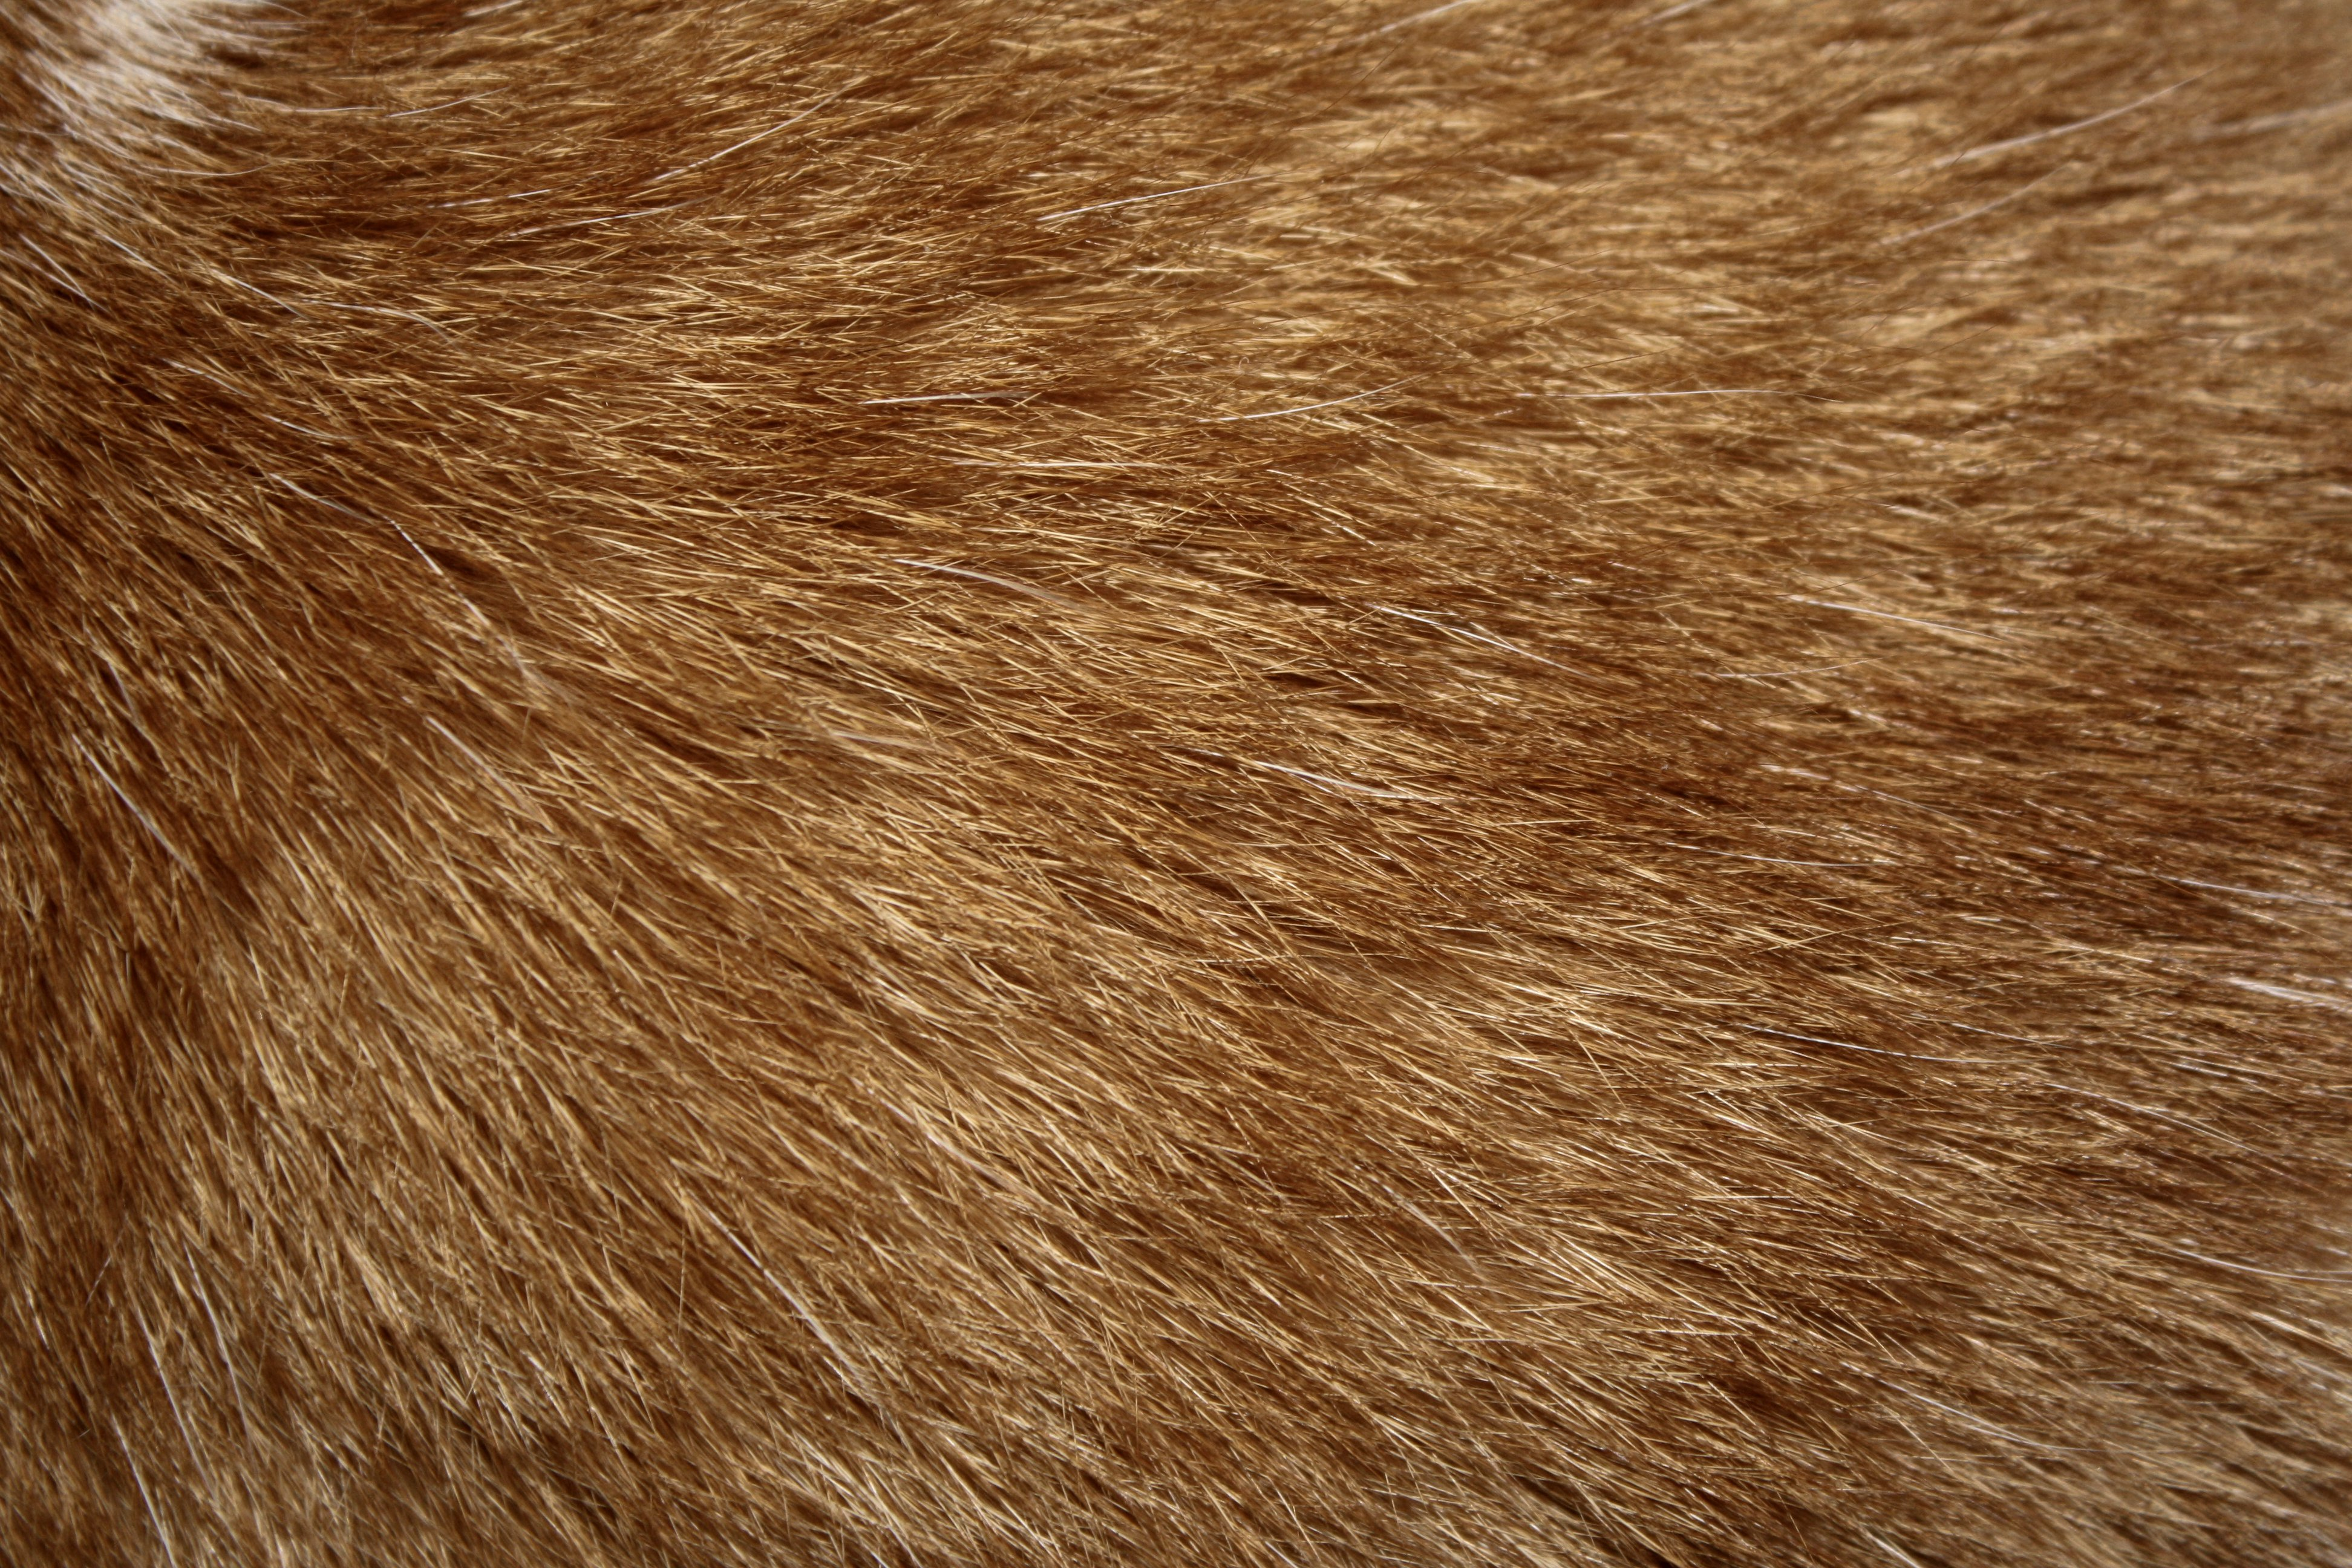 Brown fur texture | Stock Photo | Colourbox